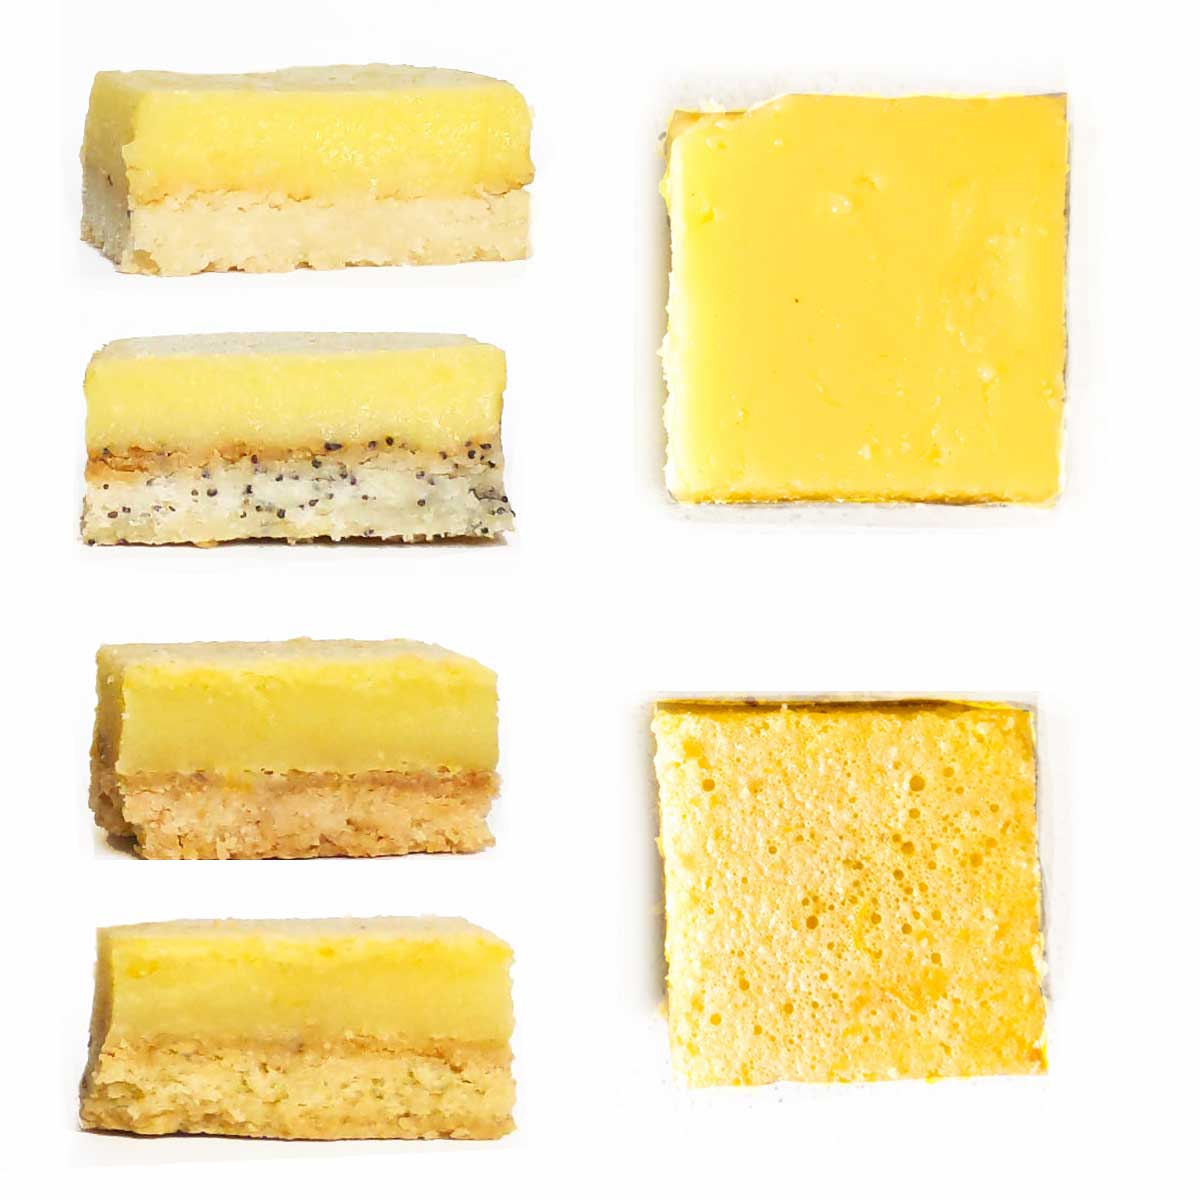 Lemon bar comparison with 4 different cut bars